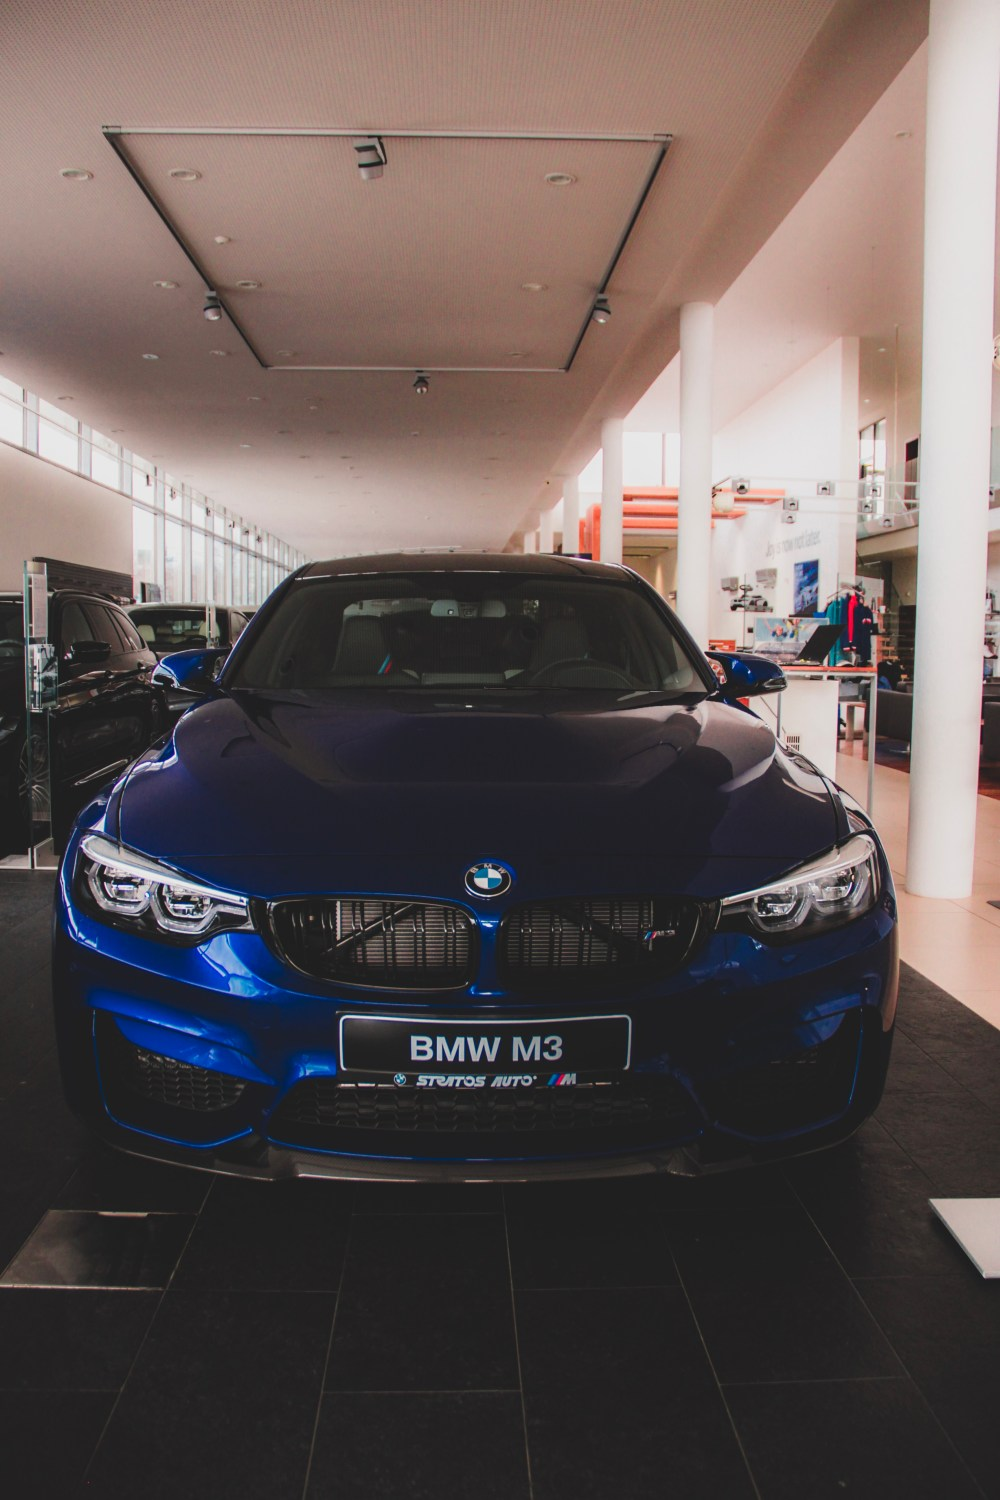 500 bmw m3 pictures